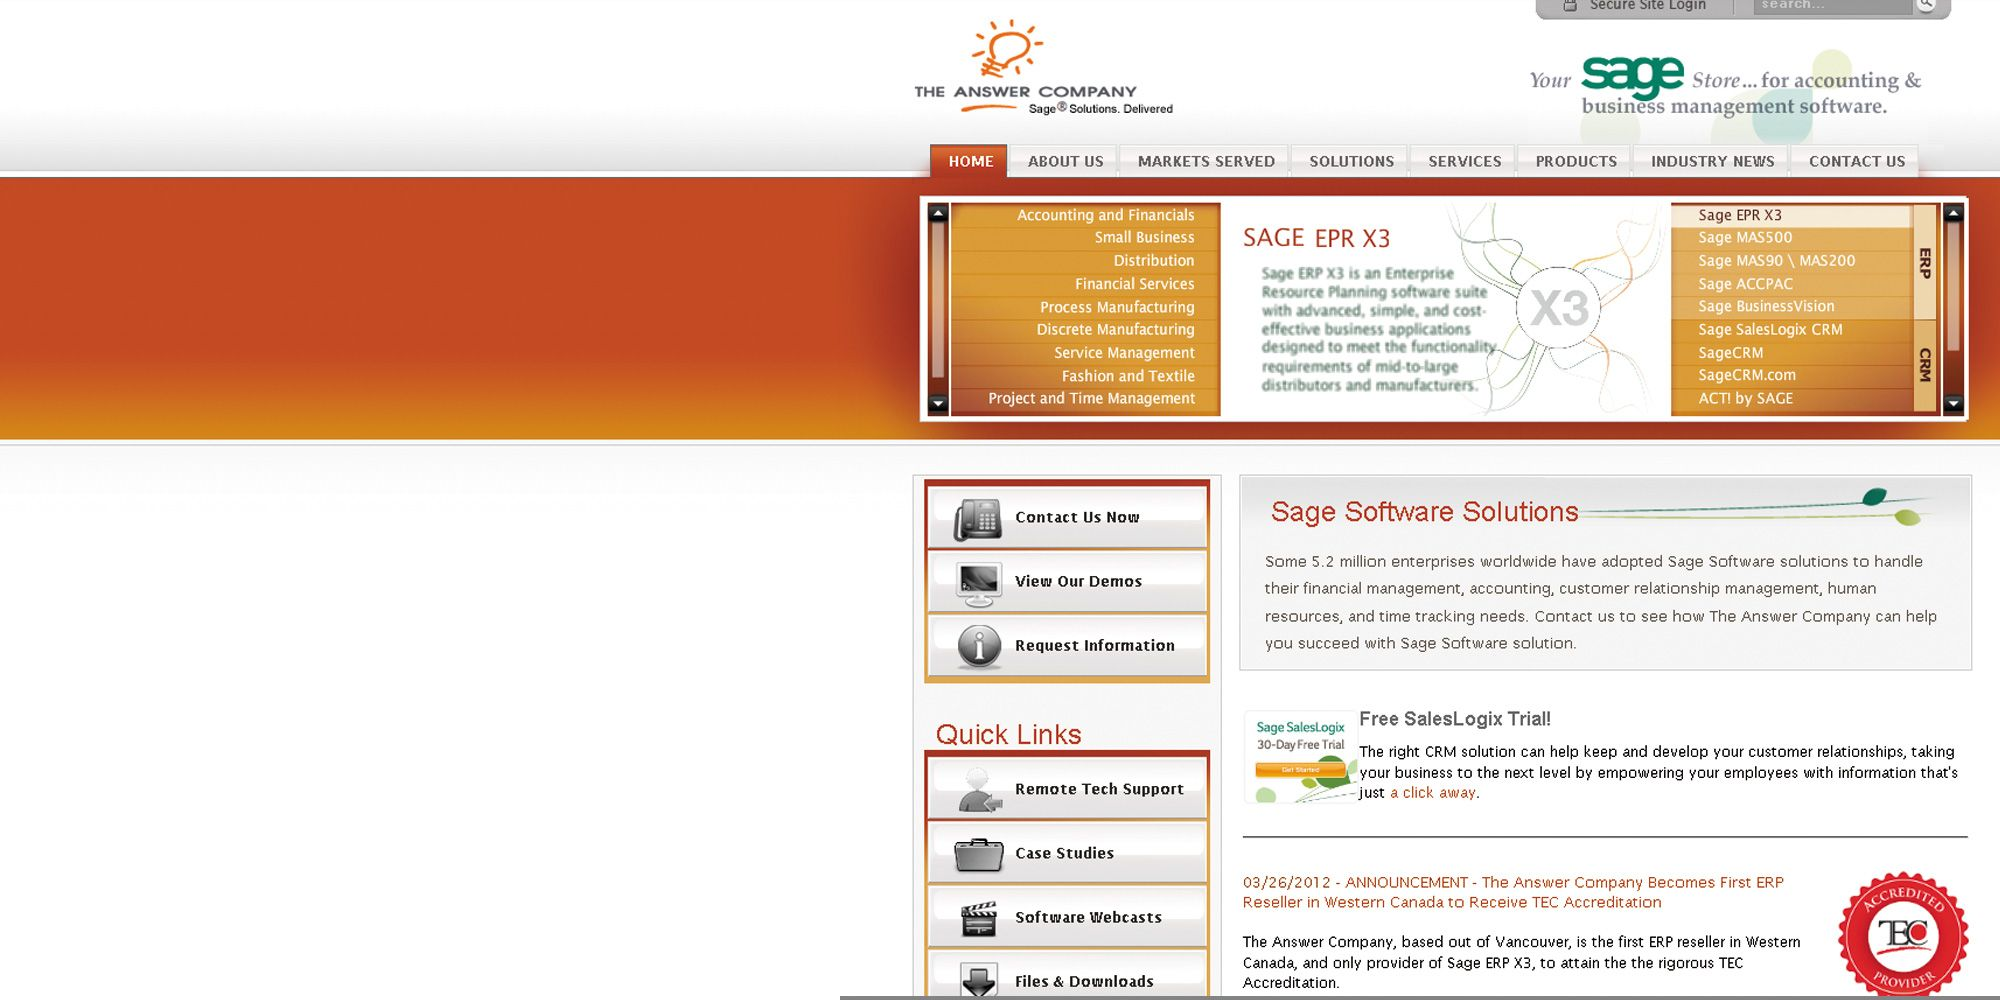 Web Solution For Business Management